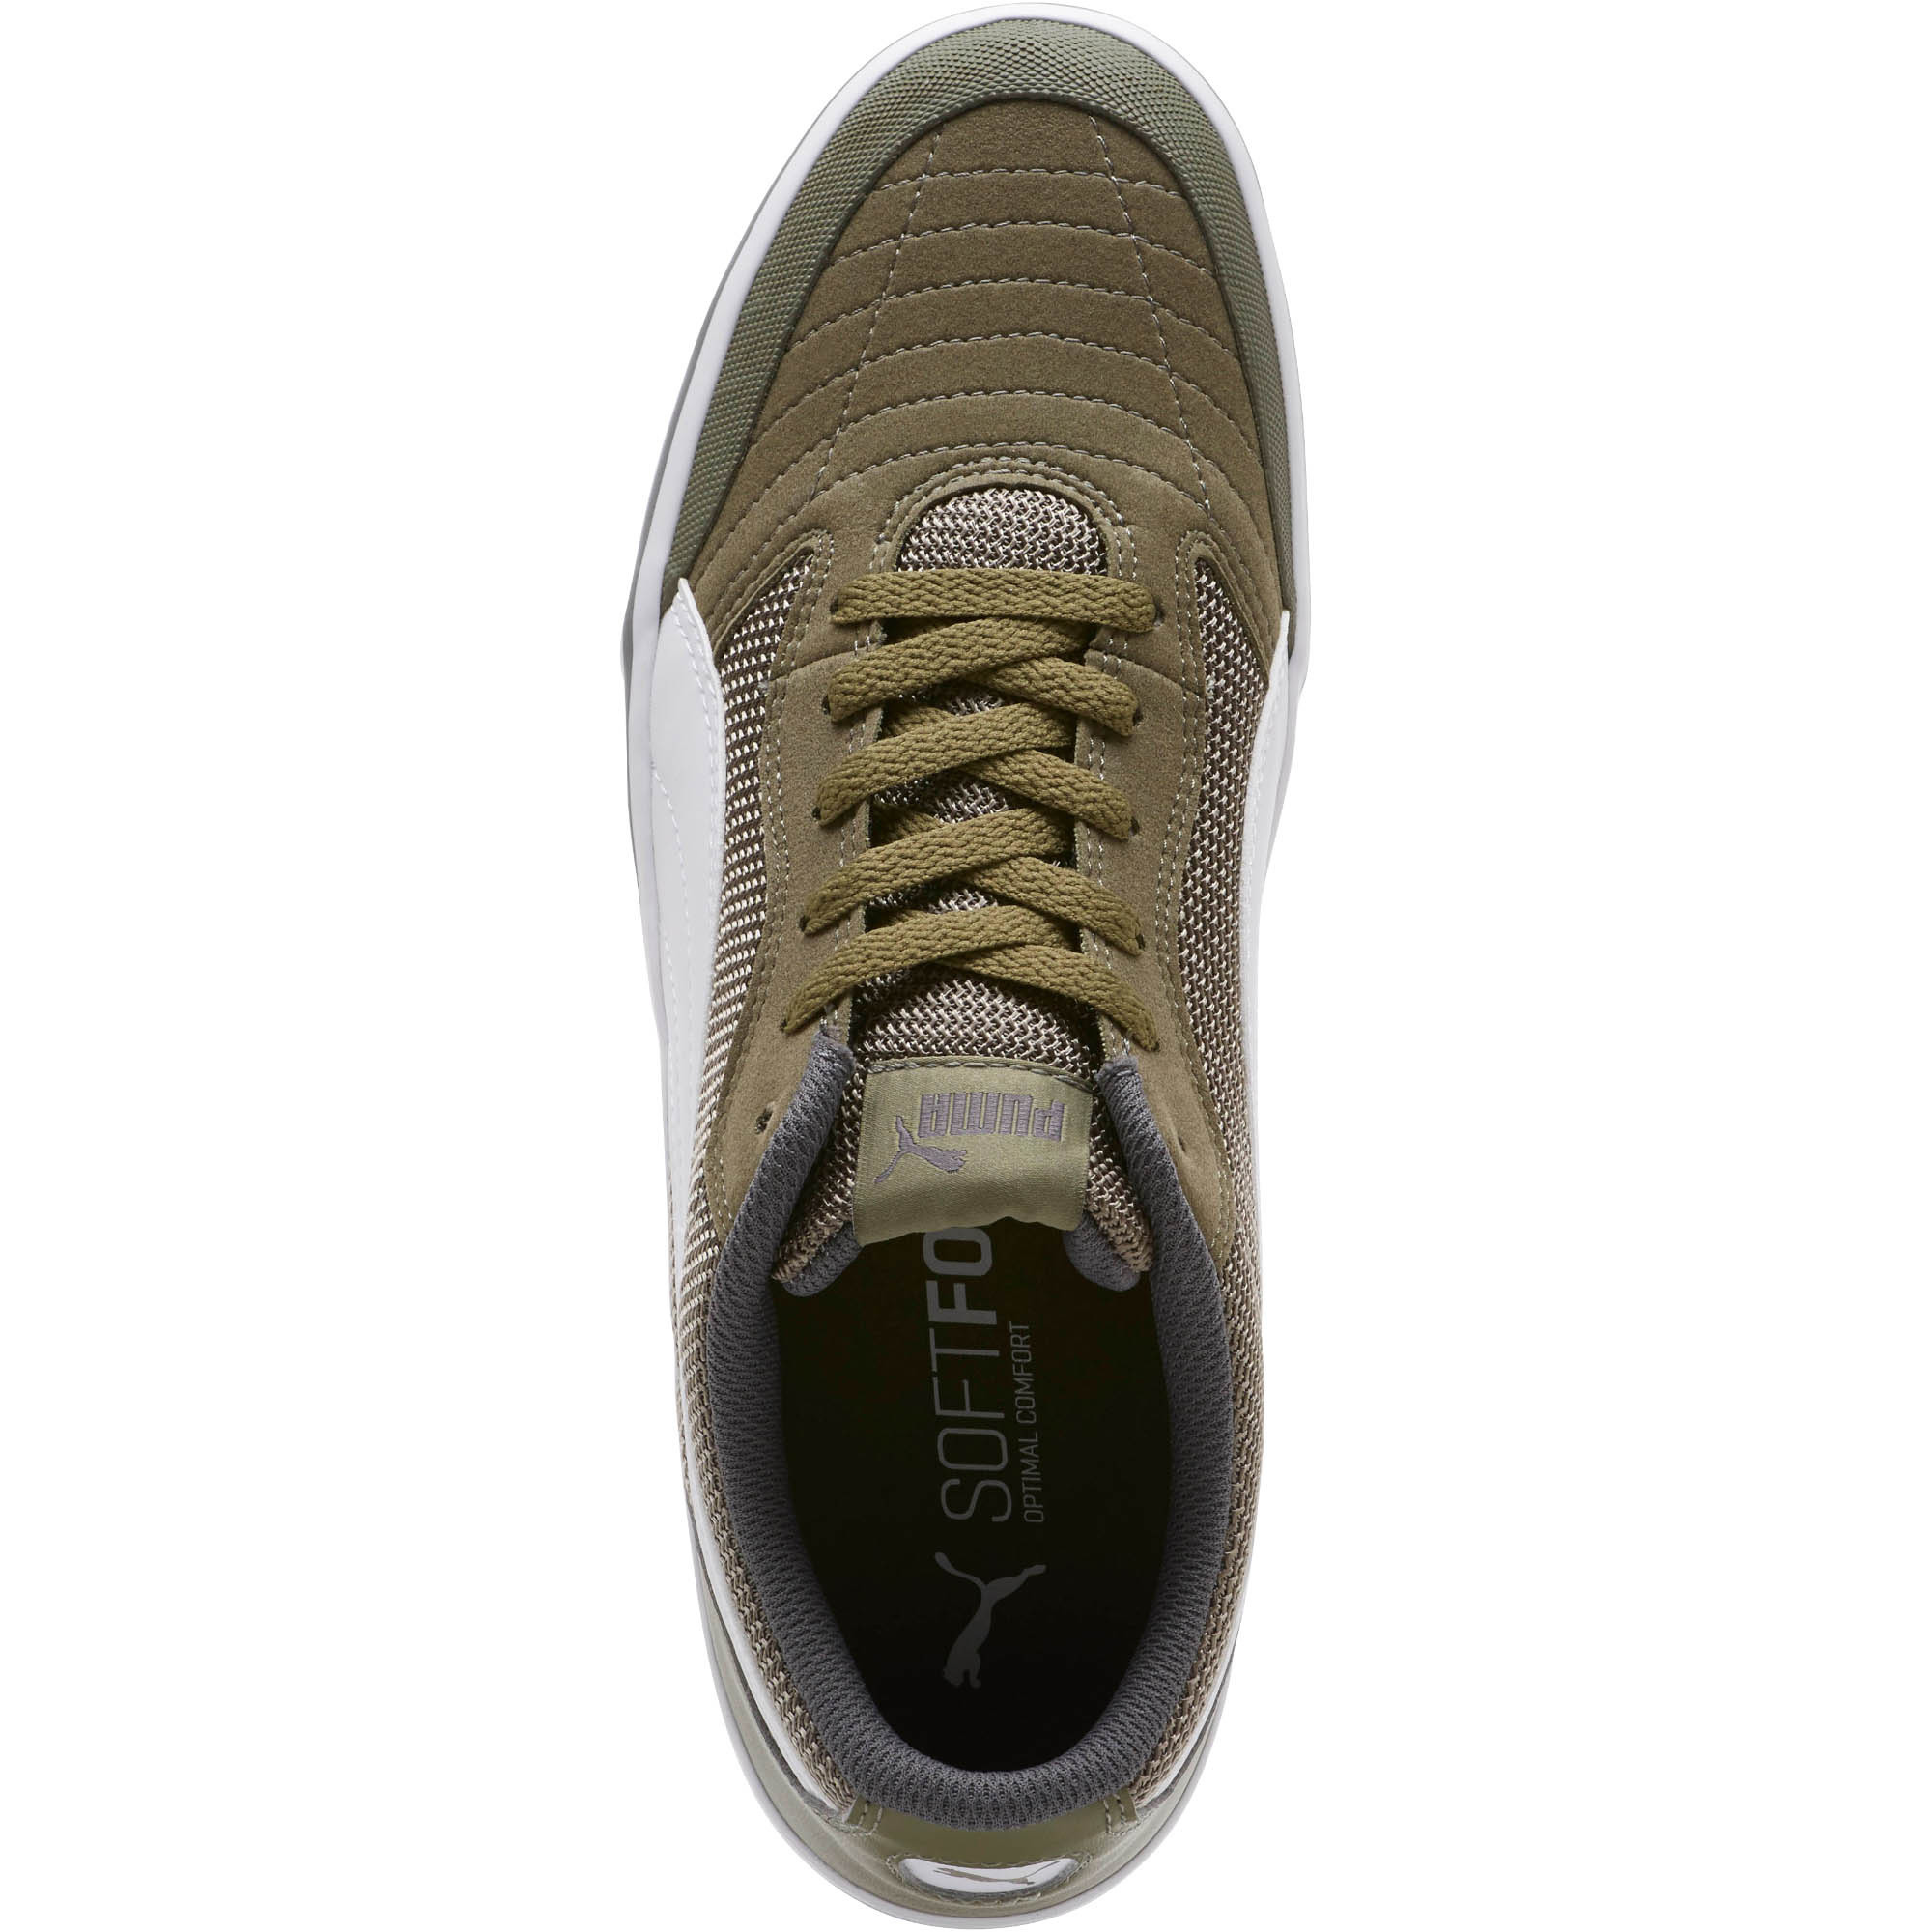 PUMA-Men-039-s-Astro-Sala-Sneakers thumbnail 26